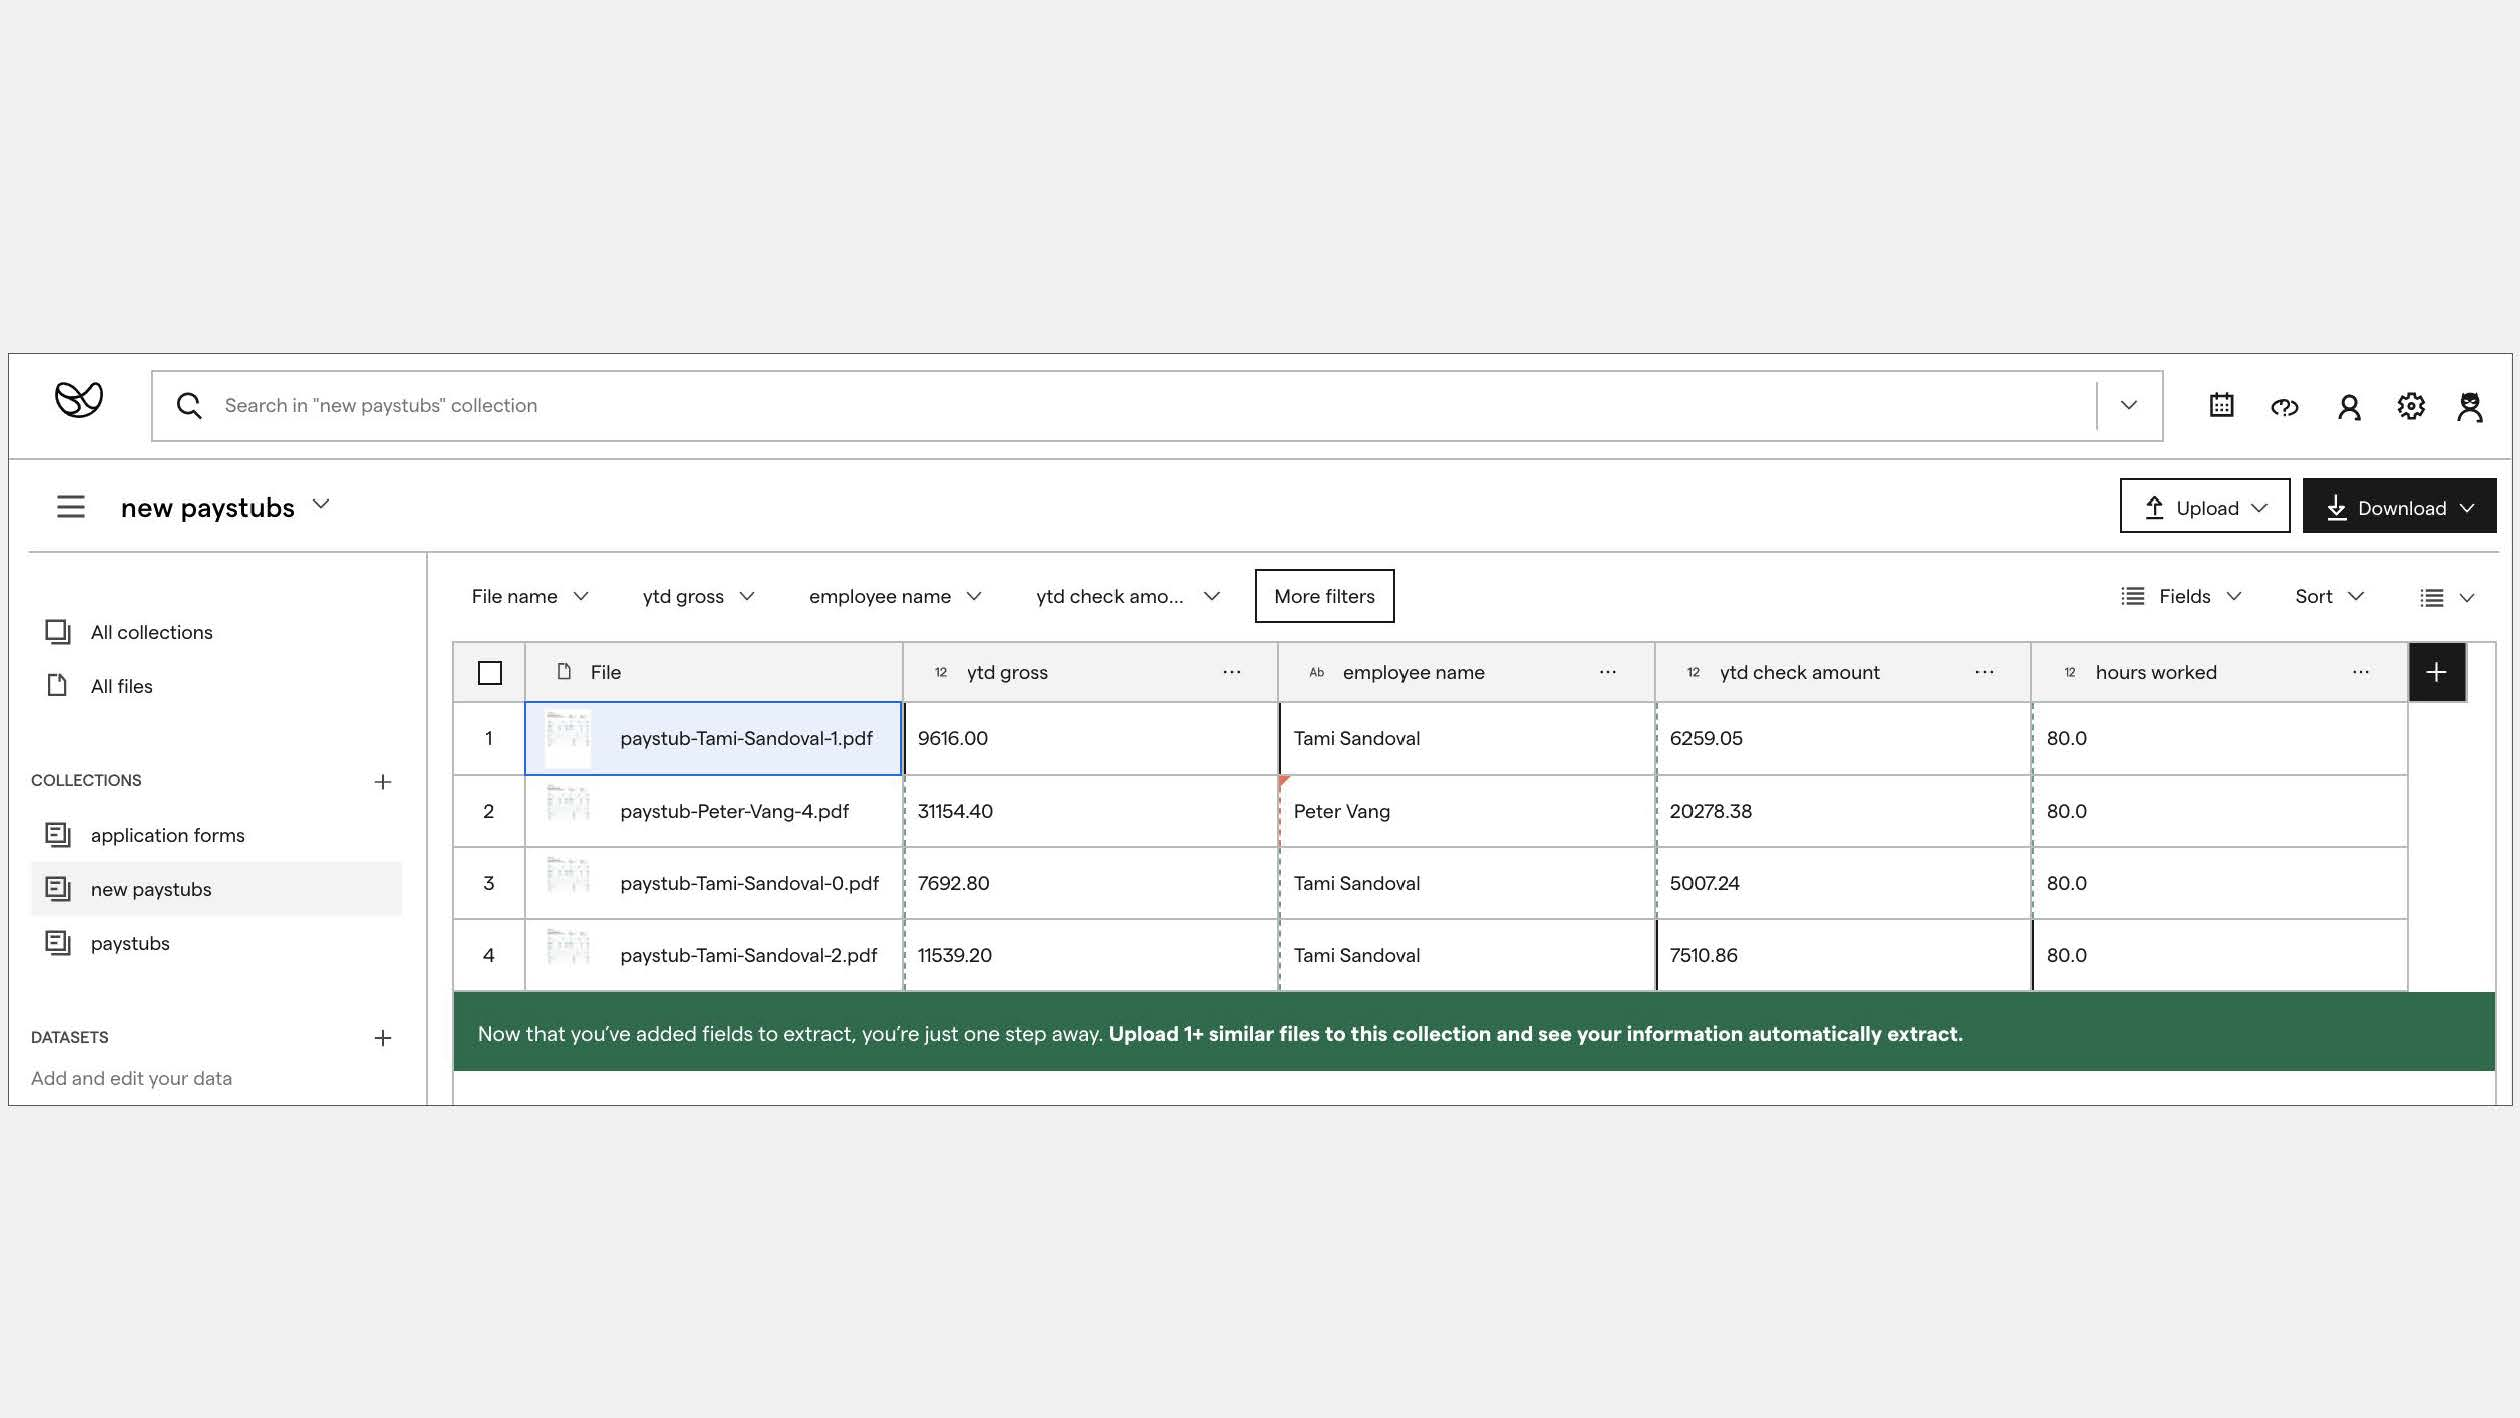 Example prompt to upload at least 5 documents to a collection